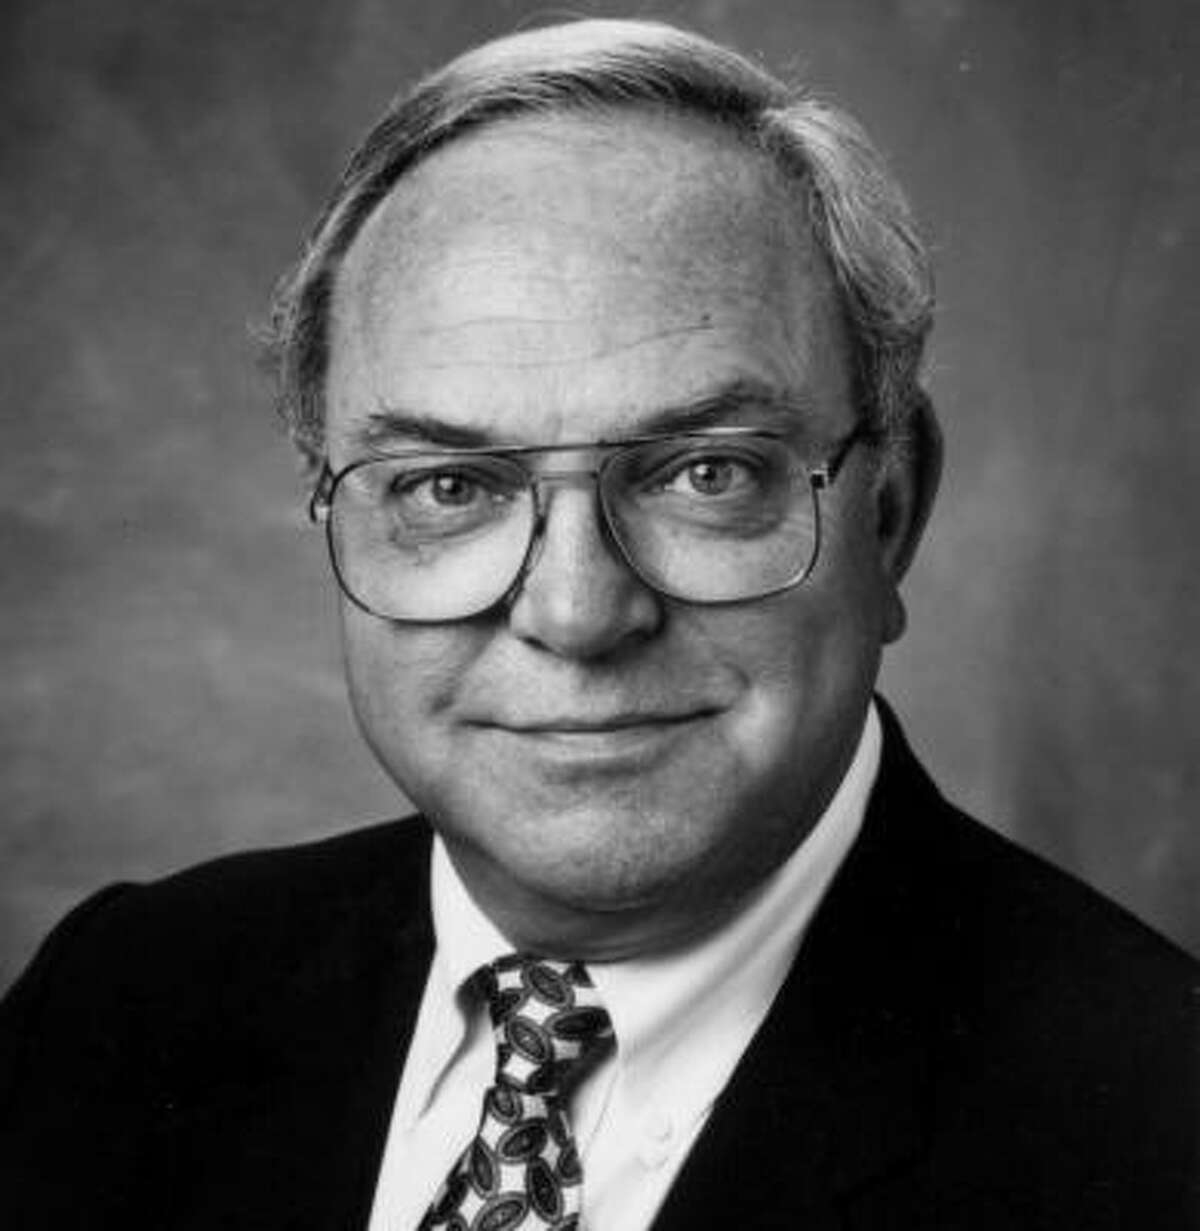 Former Houston news anchor Ron Stone died at 72 after suffering from cancer.